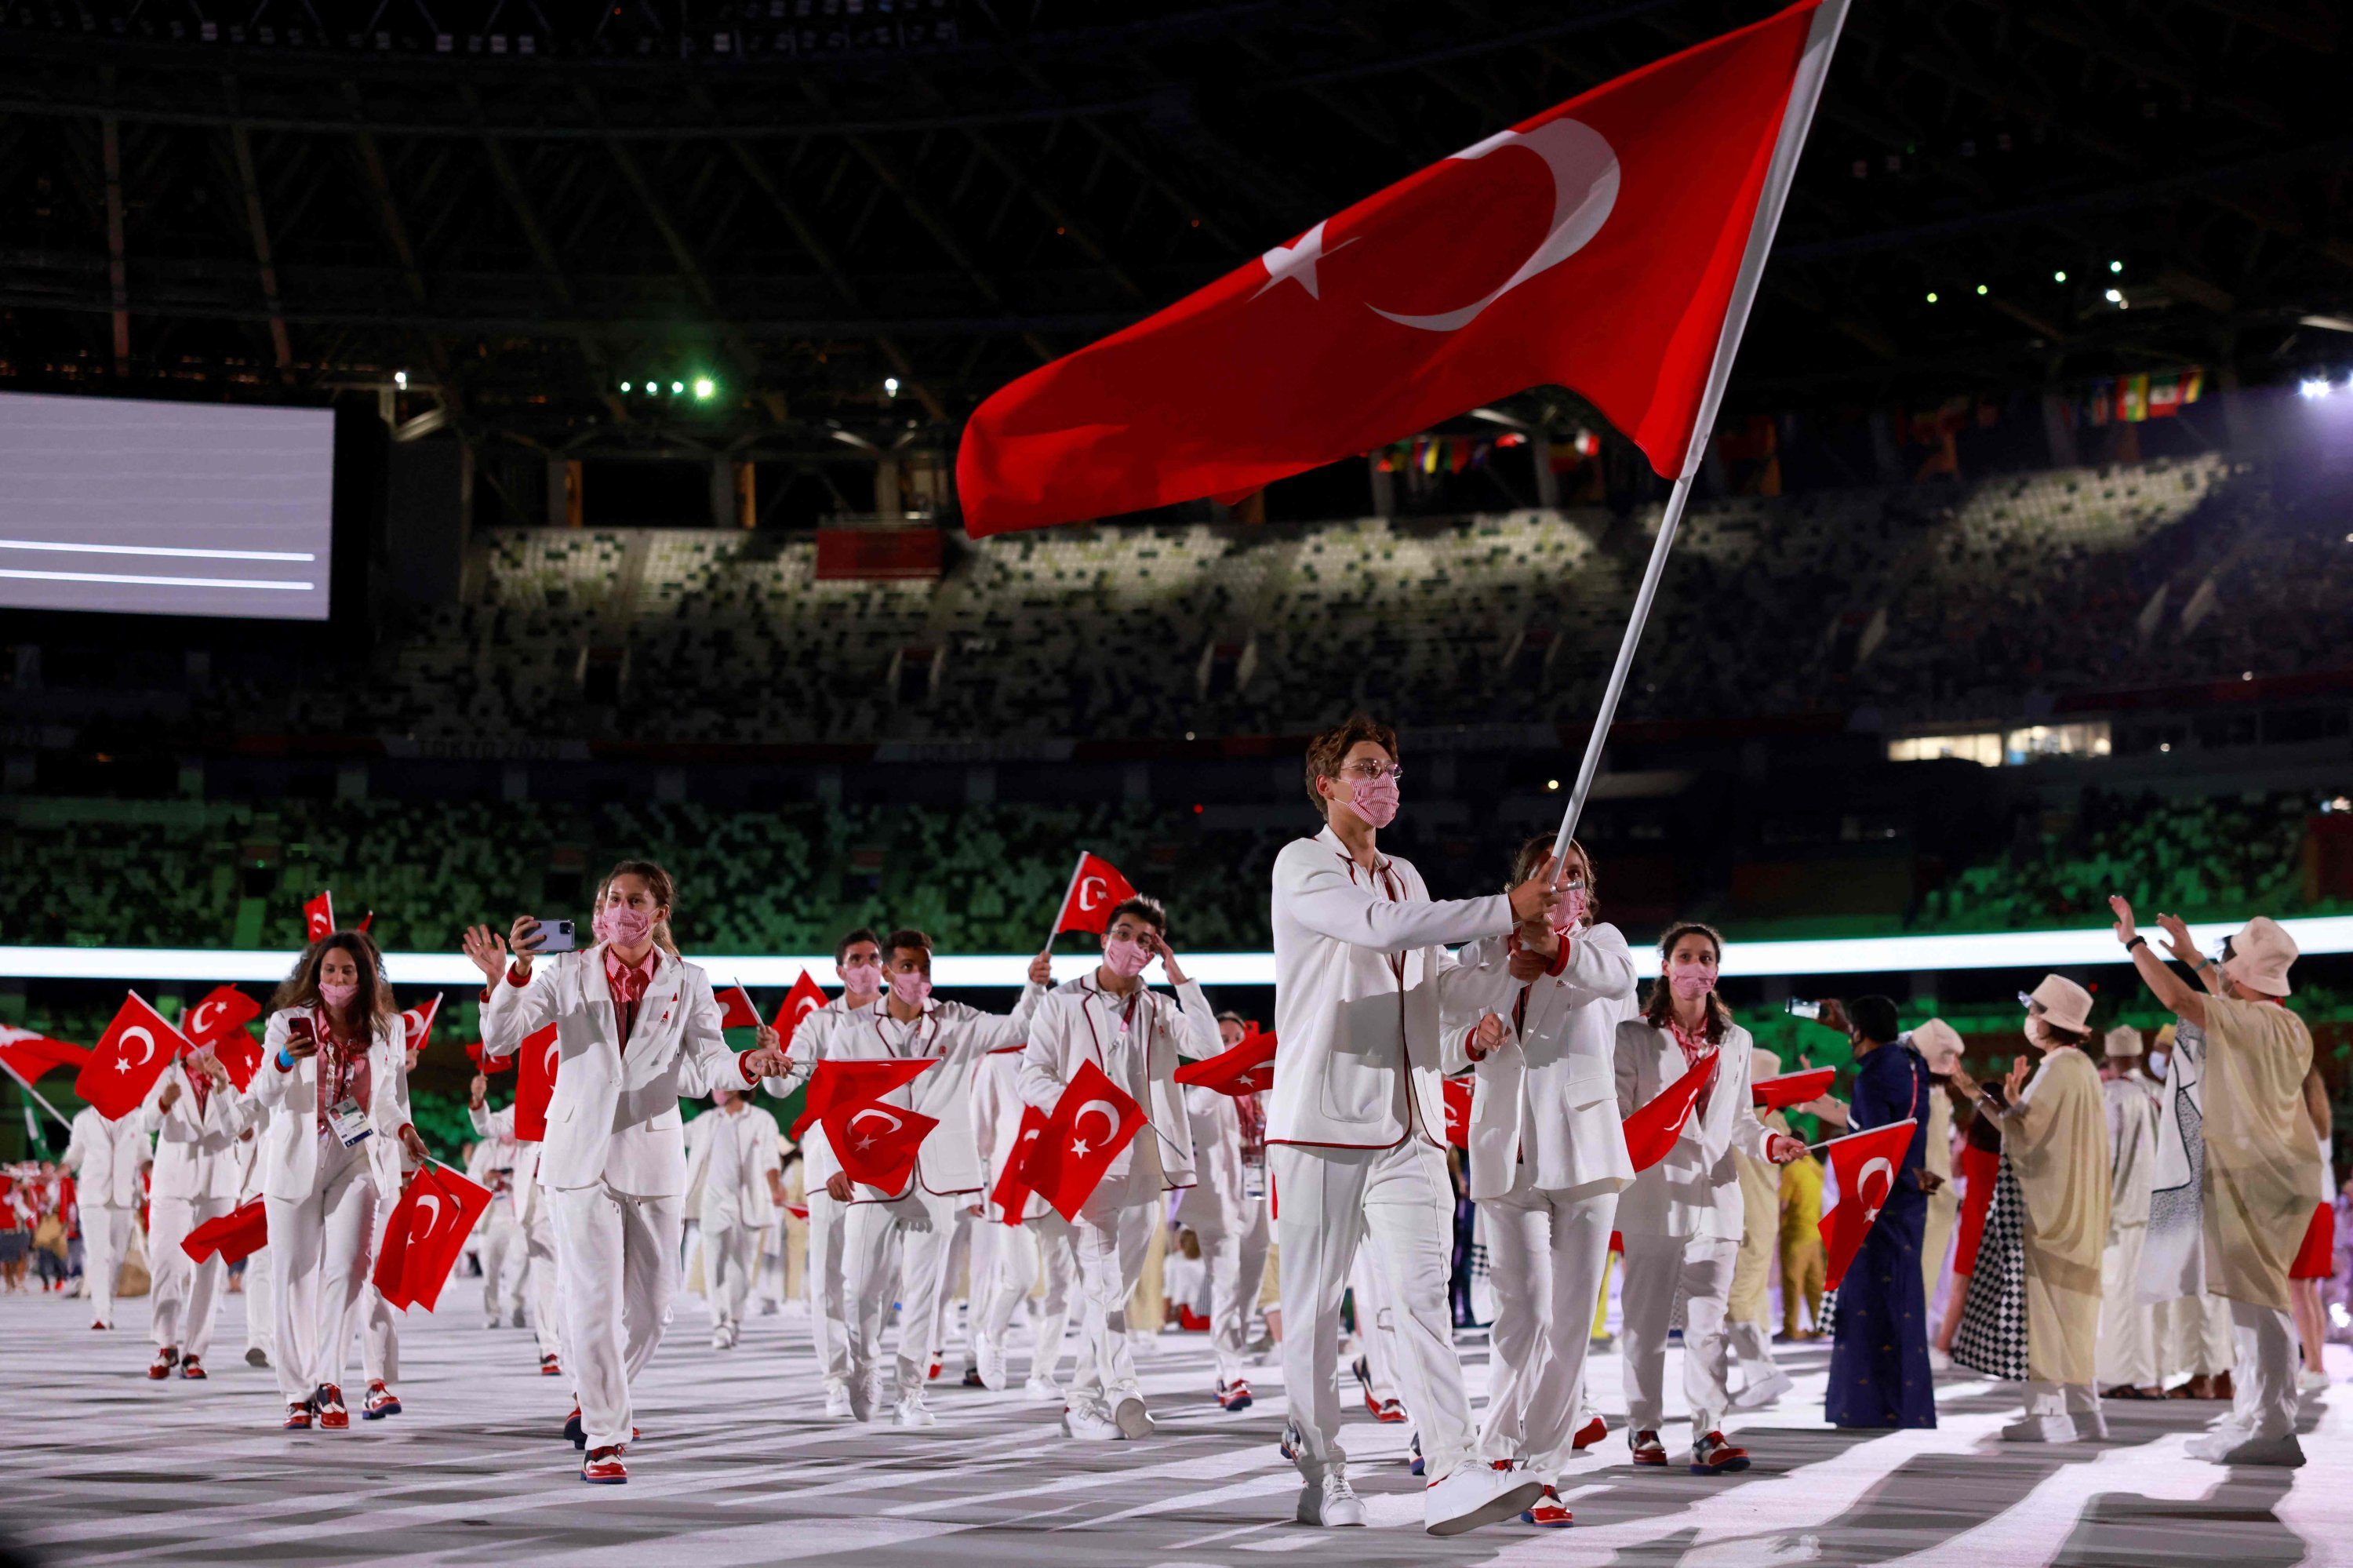 Turkey's flag bearer Berke Saka (L) and Merve Tuncel lead the Team Turkey during the opening ceremony in the Olympic Stadium at the 2020 Summer Olympics, in Tokyo, Japan, July 23, 2021. (AFP Photo)